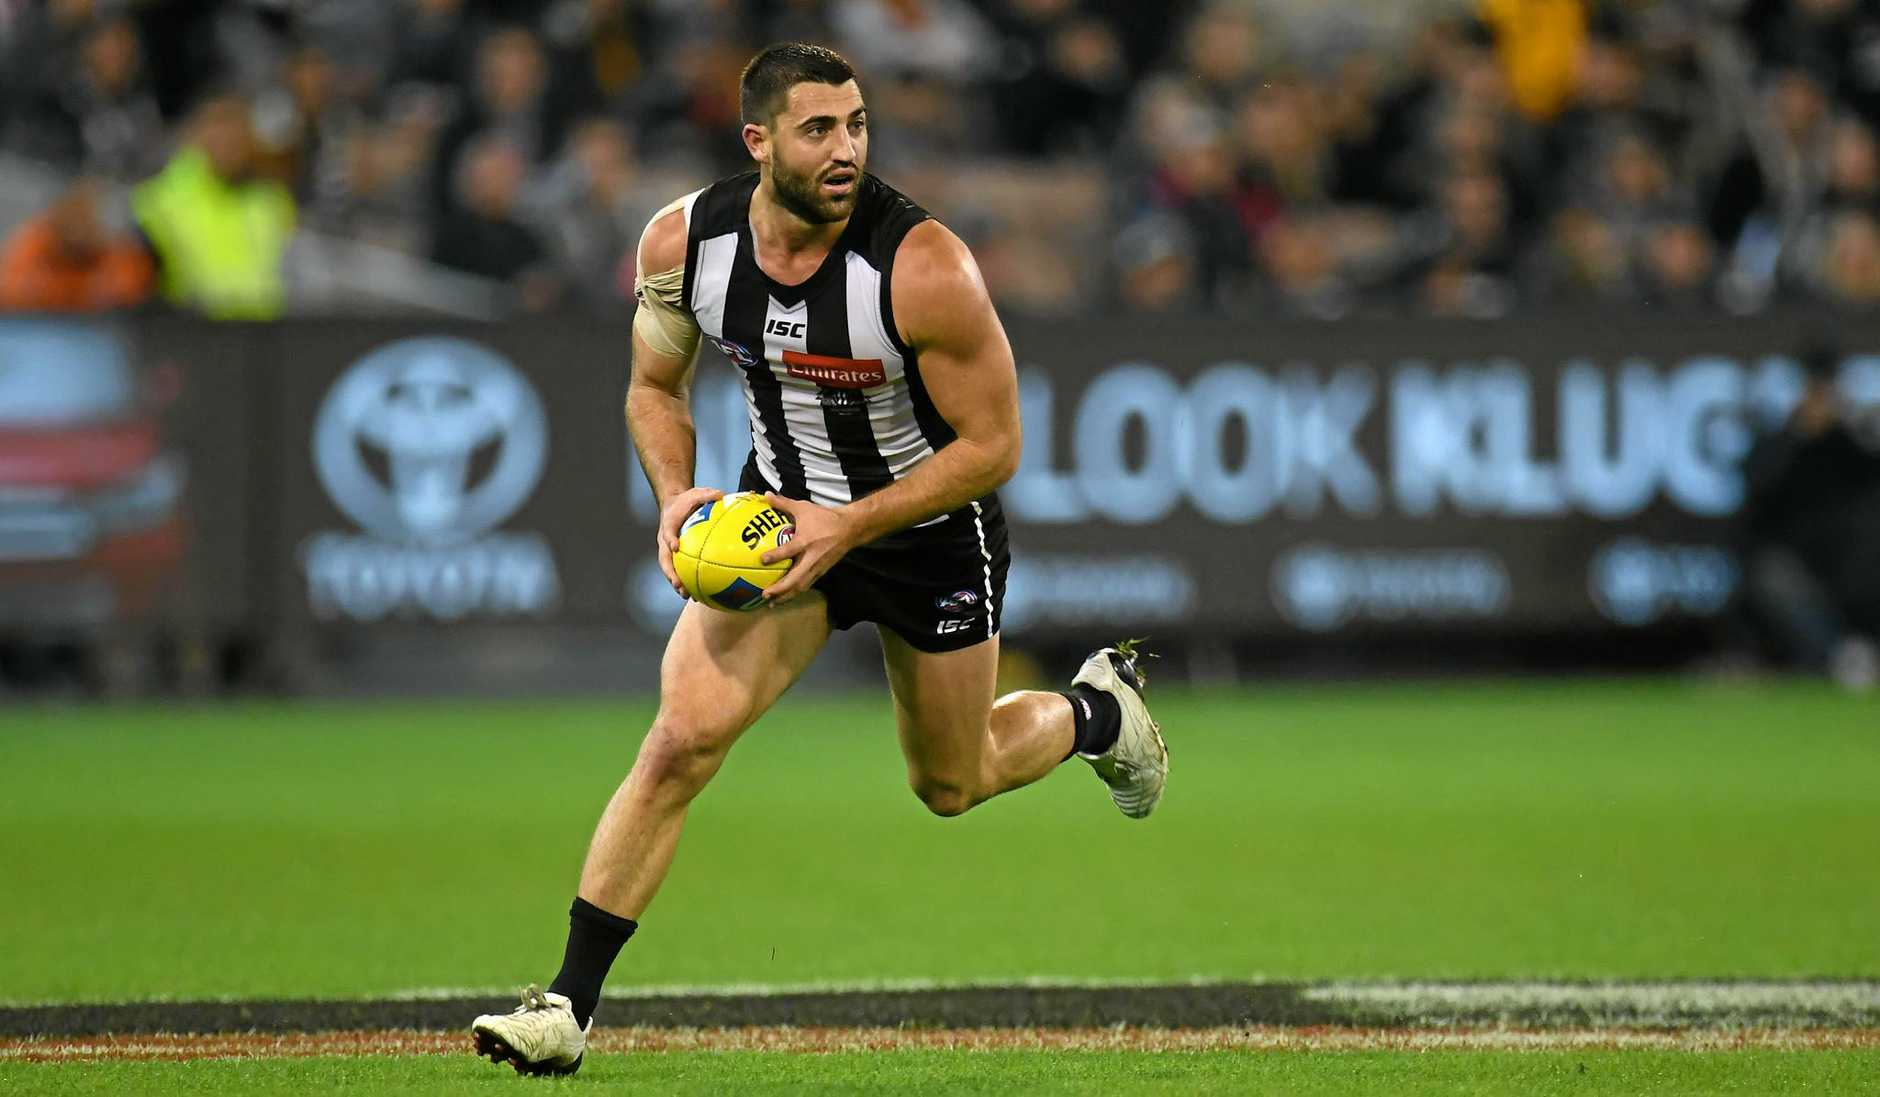 Alex Fasolo will take an extended break from football to deal with depression.